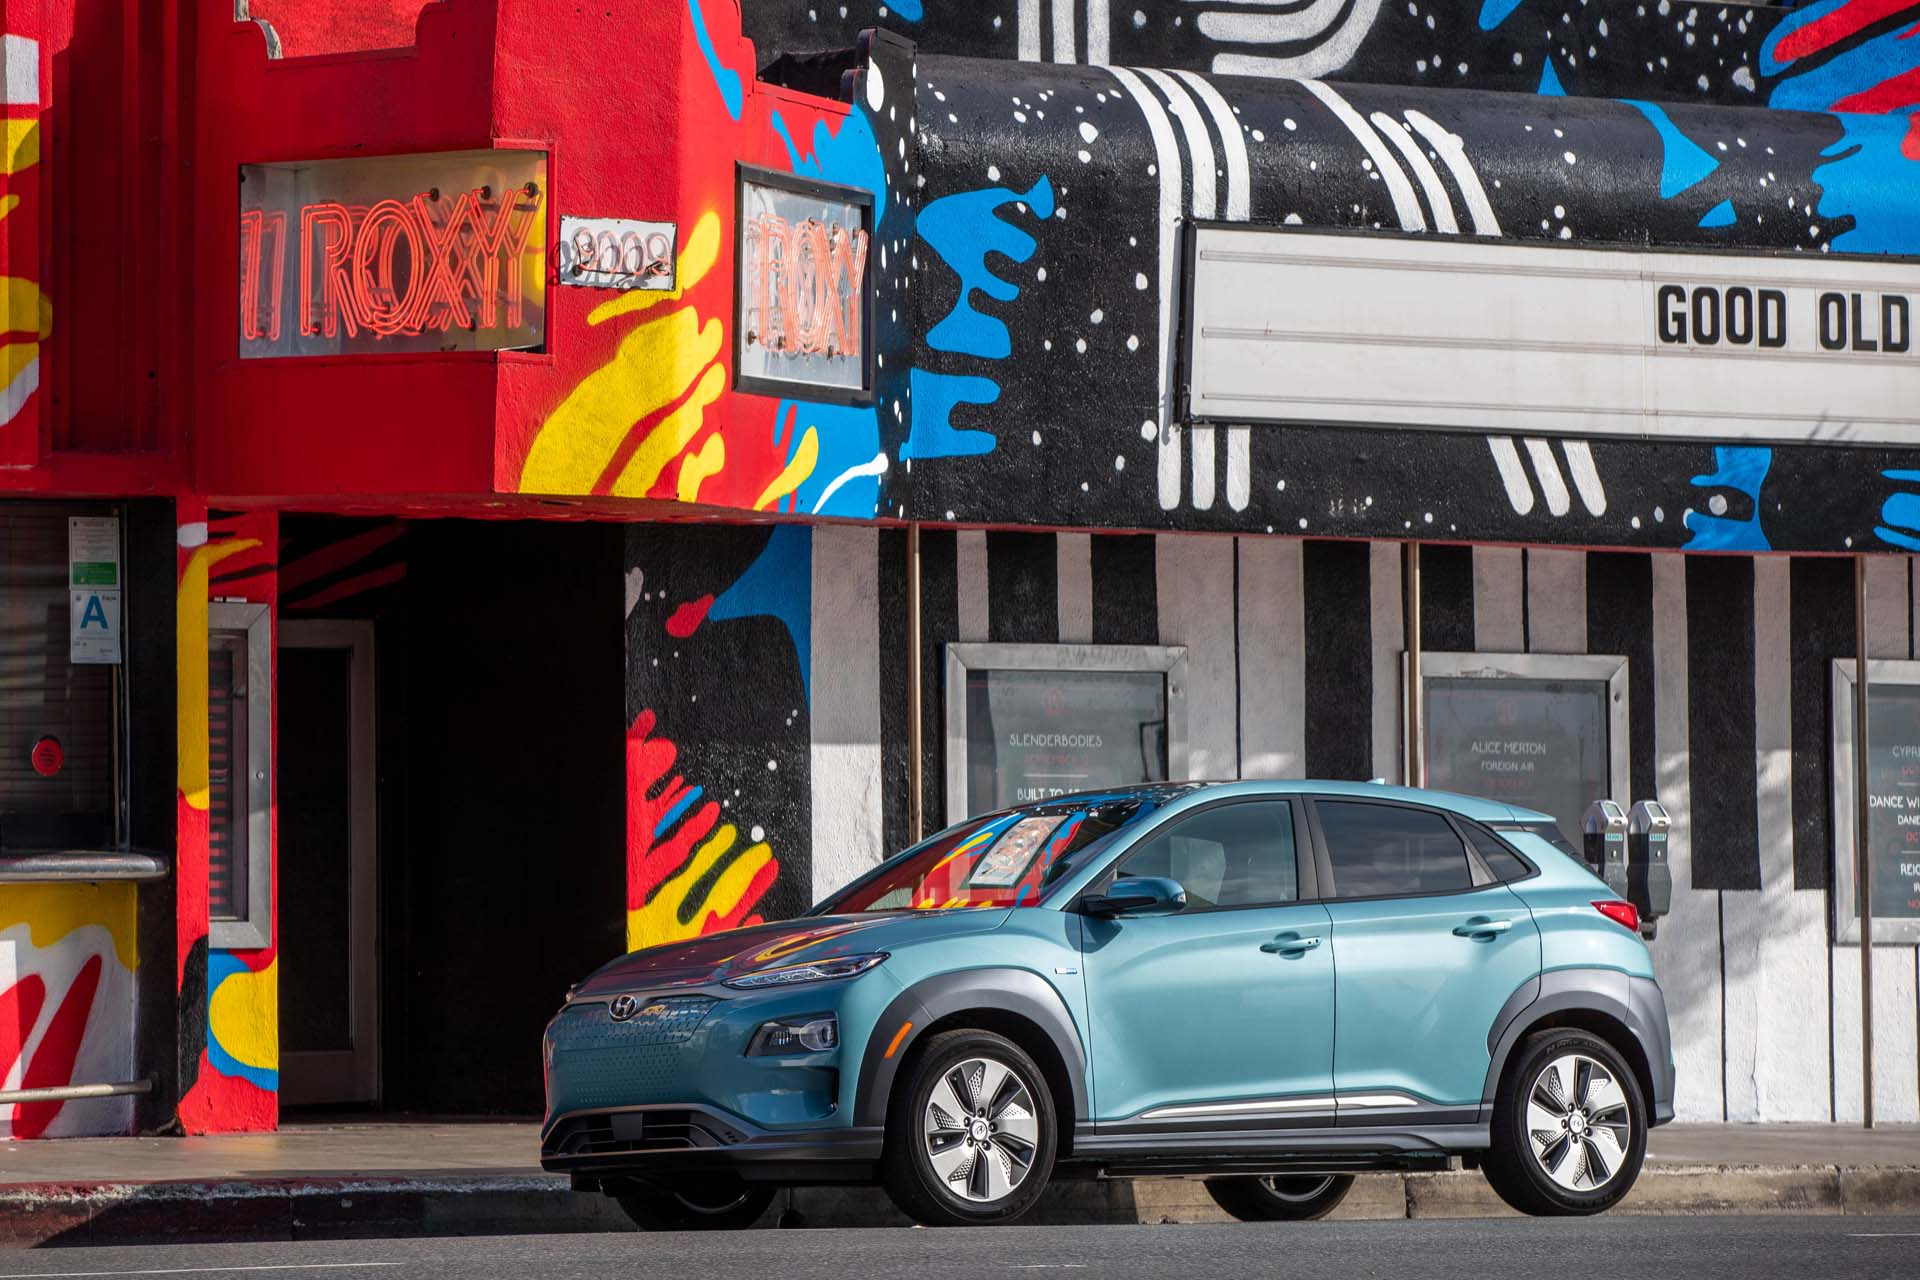 2019 Hyundai Kona Electric costs $500 more than it did last month